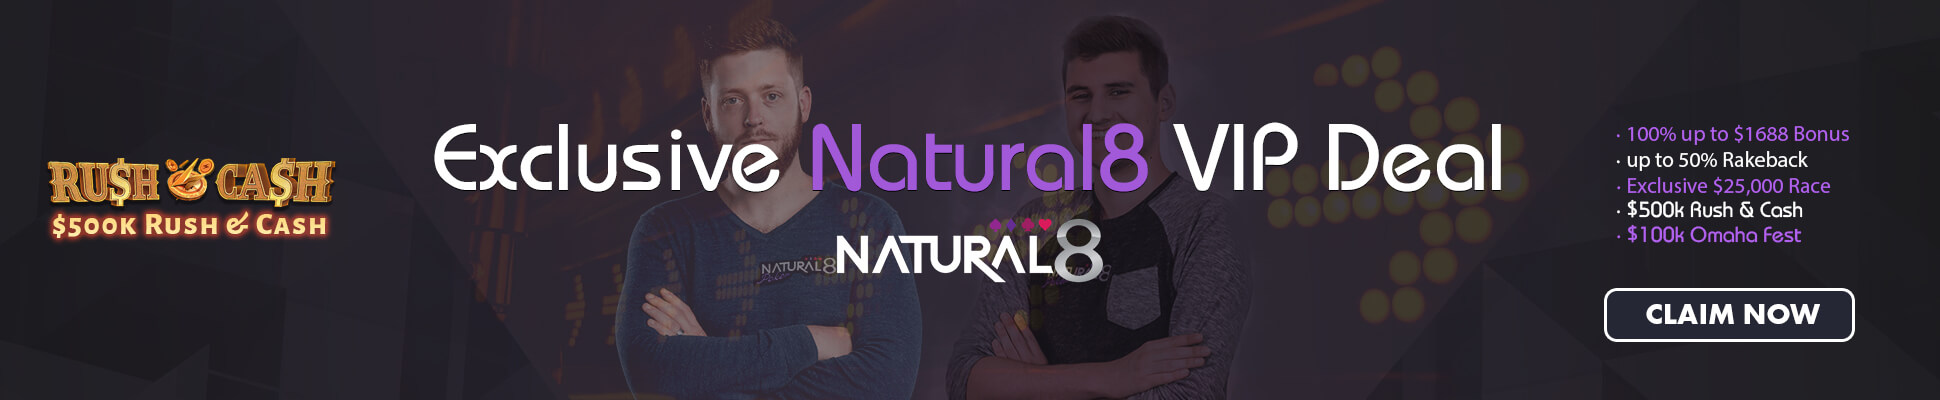 natural8-slider-created-October